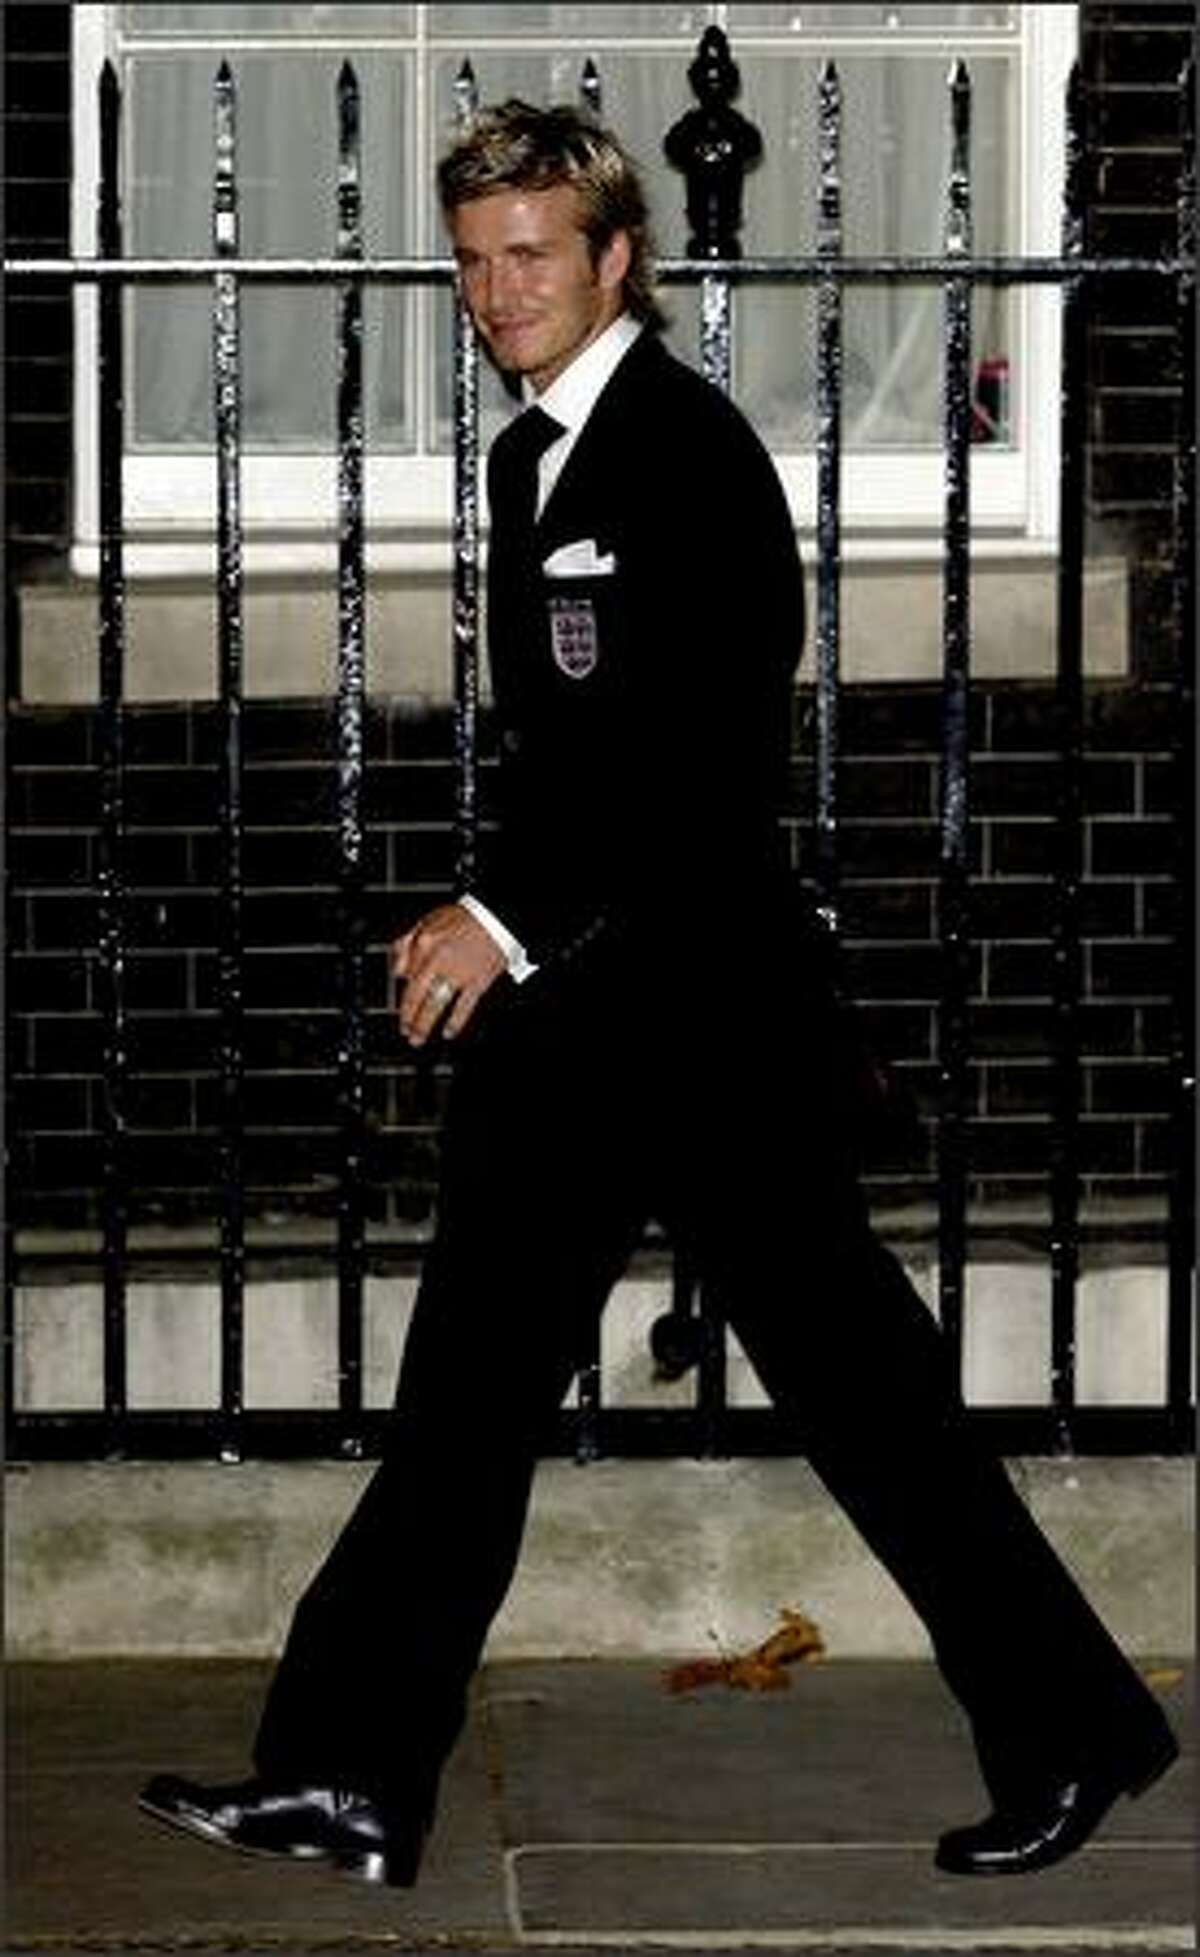 David Beckham attends an evening reception for the England World Cup squad, hosted by British Prime Minister Tony Blair, at 10 Downing Street in London, Oct. 8, 2002.